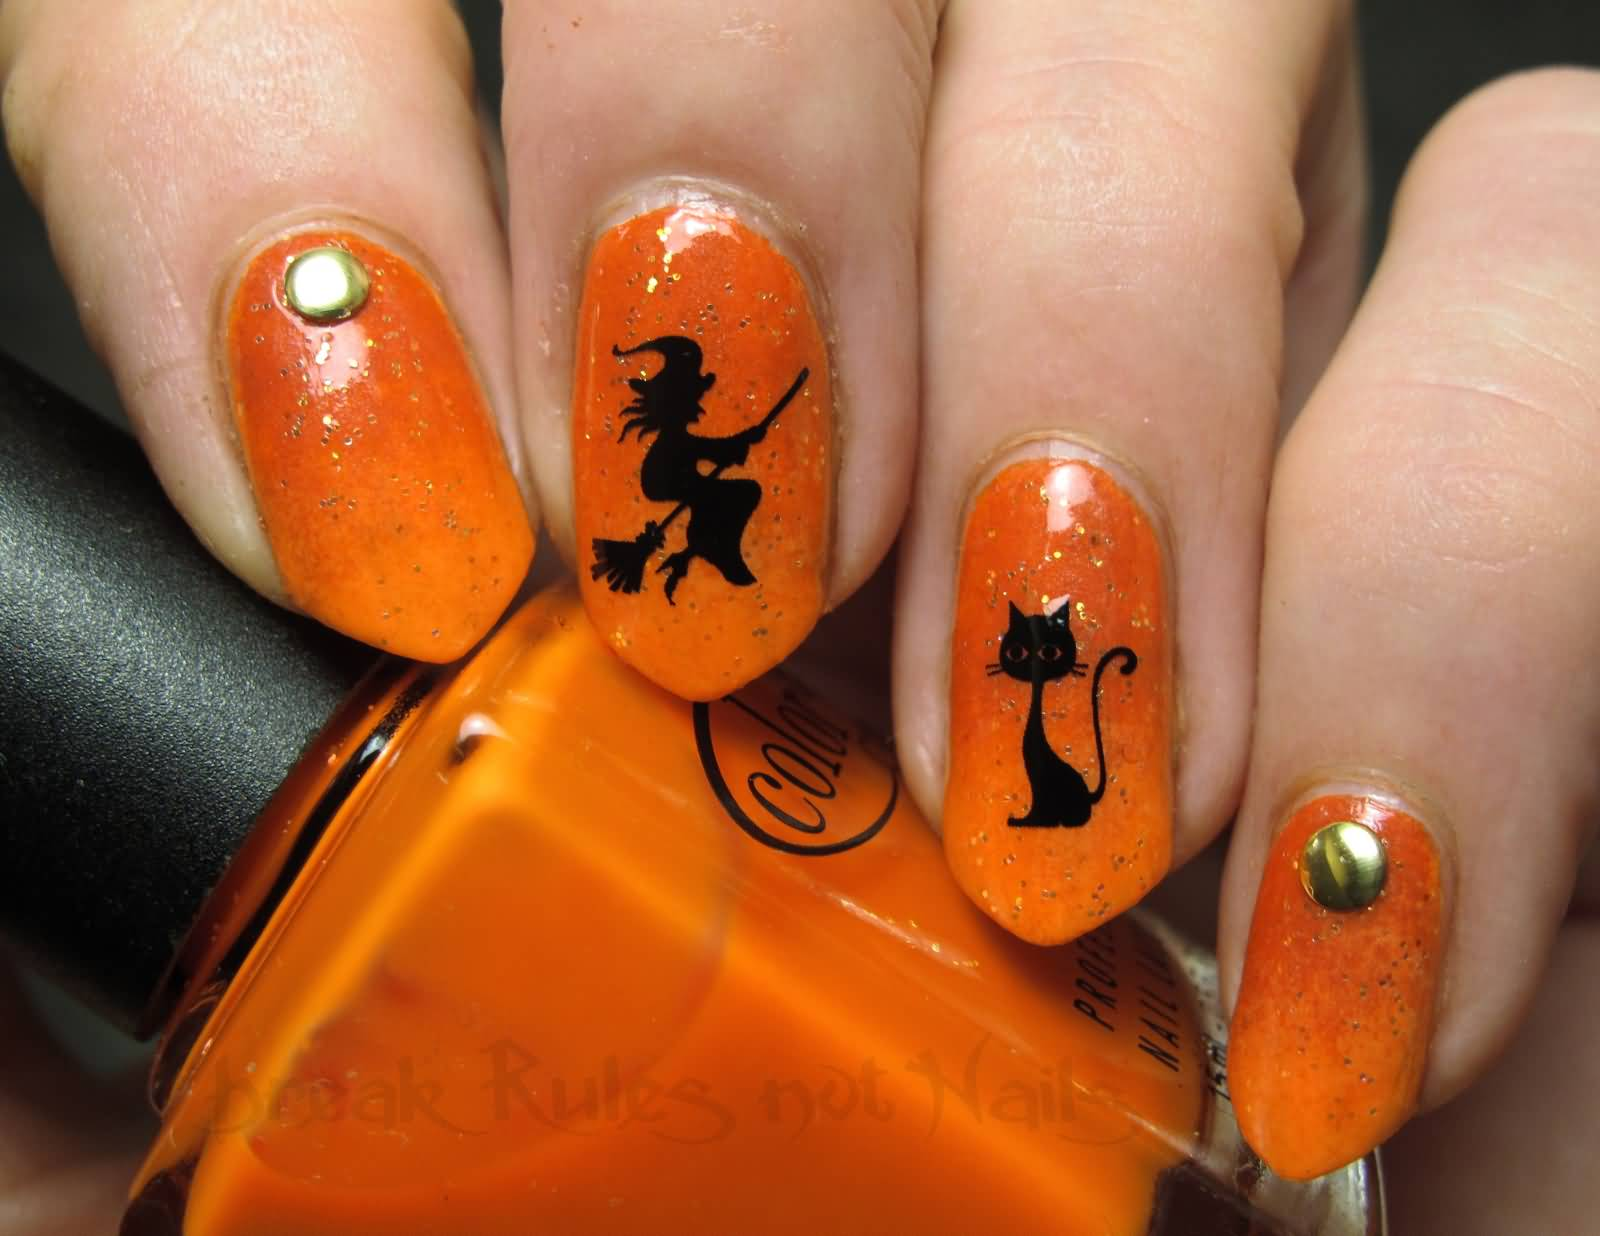 Orange Nails With Black Cat And Witch Nail Art